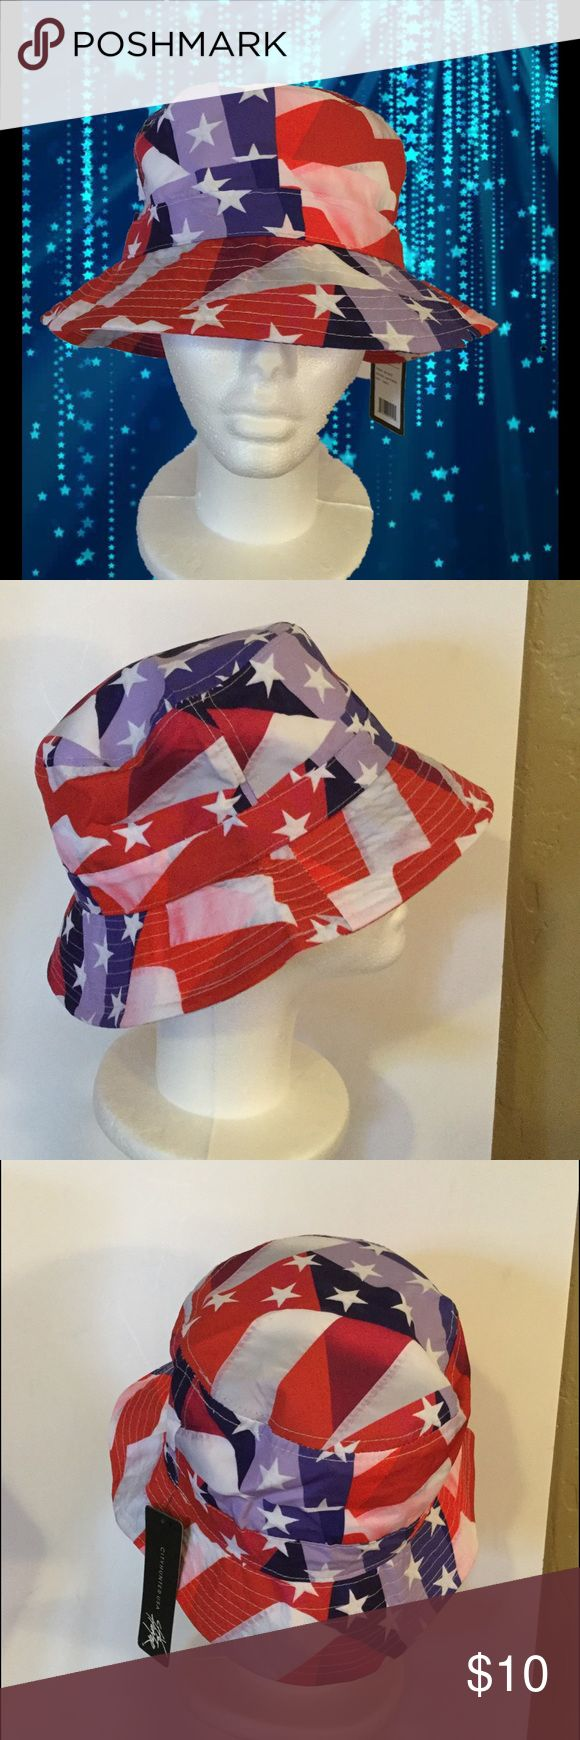 Red, White & Blue Hat Red, white and blue bucket hat with white stars, 100% Polyester City Hunter USA Accessories Hats